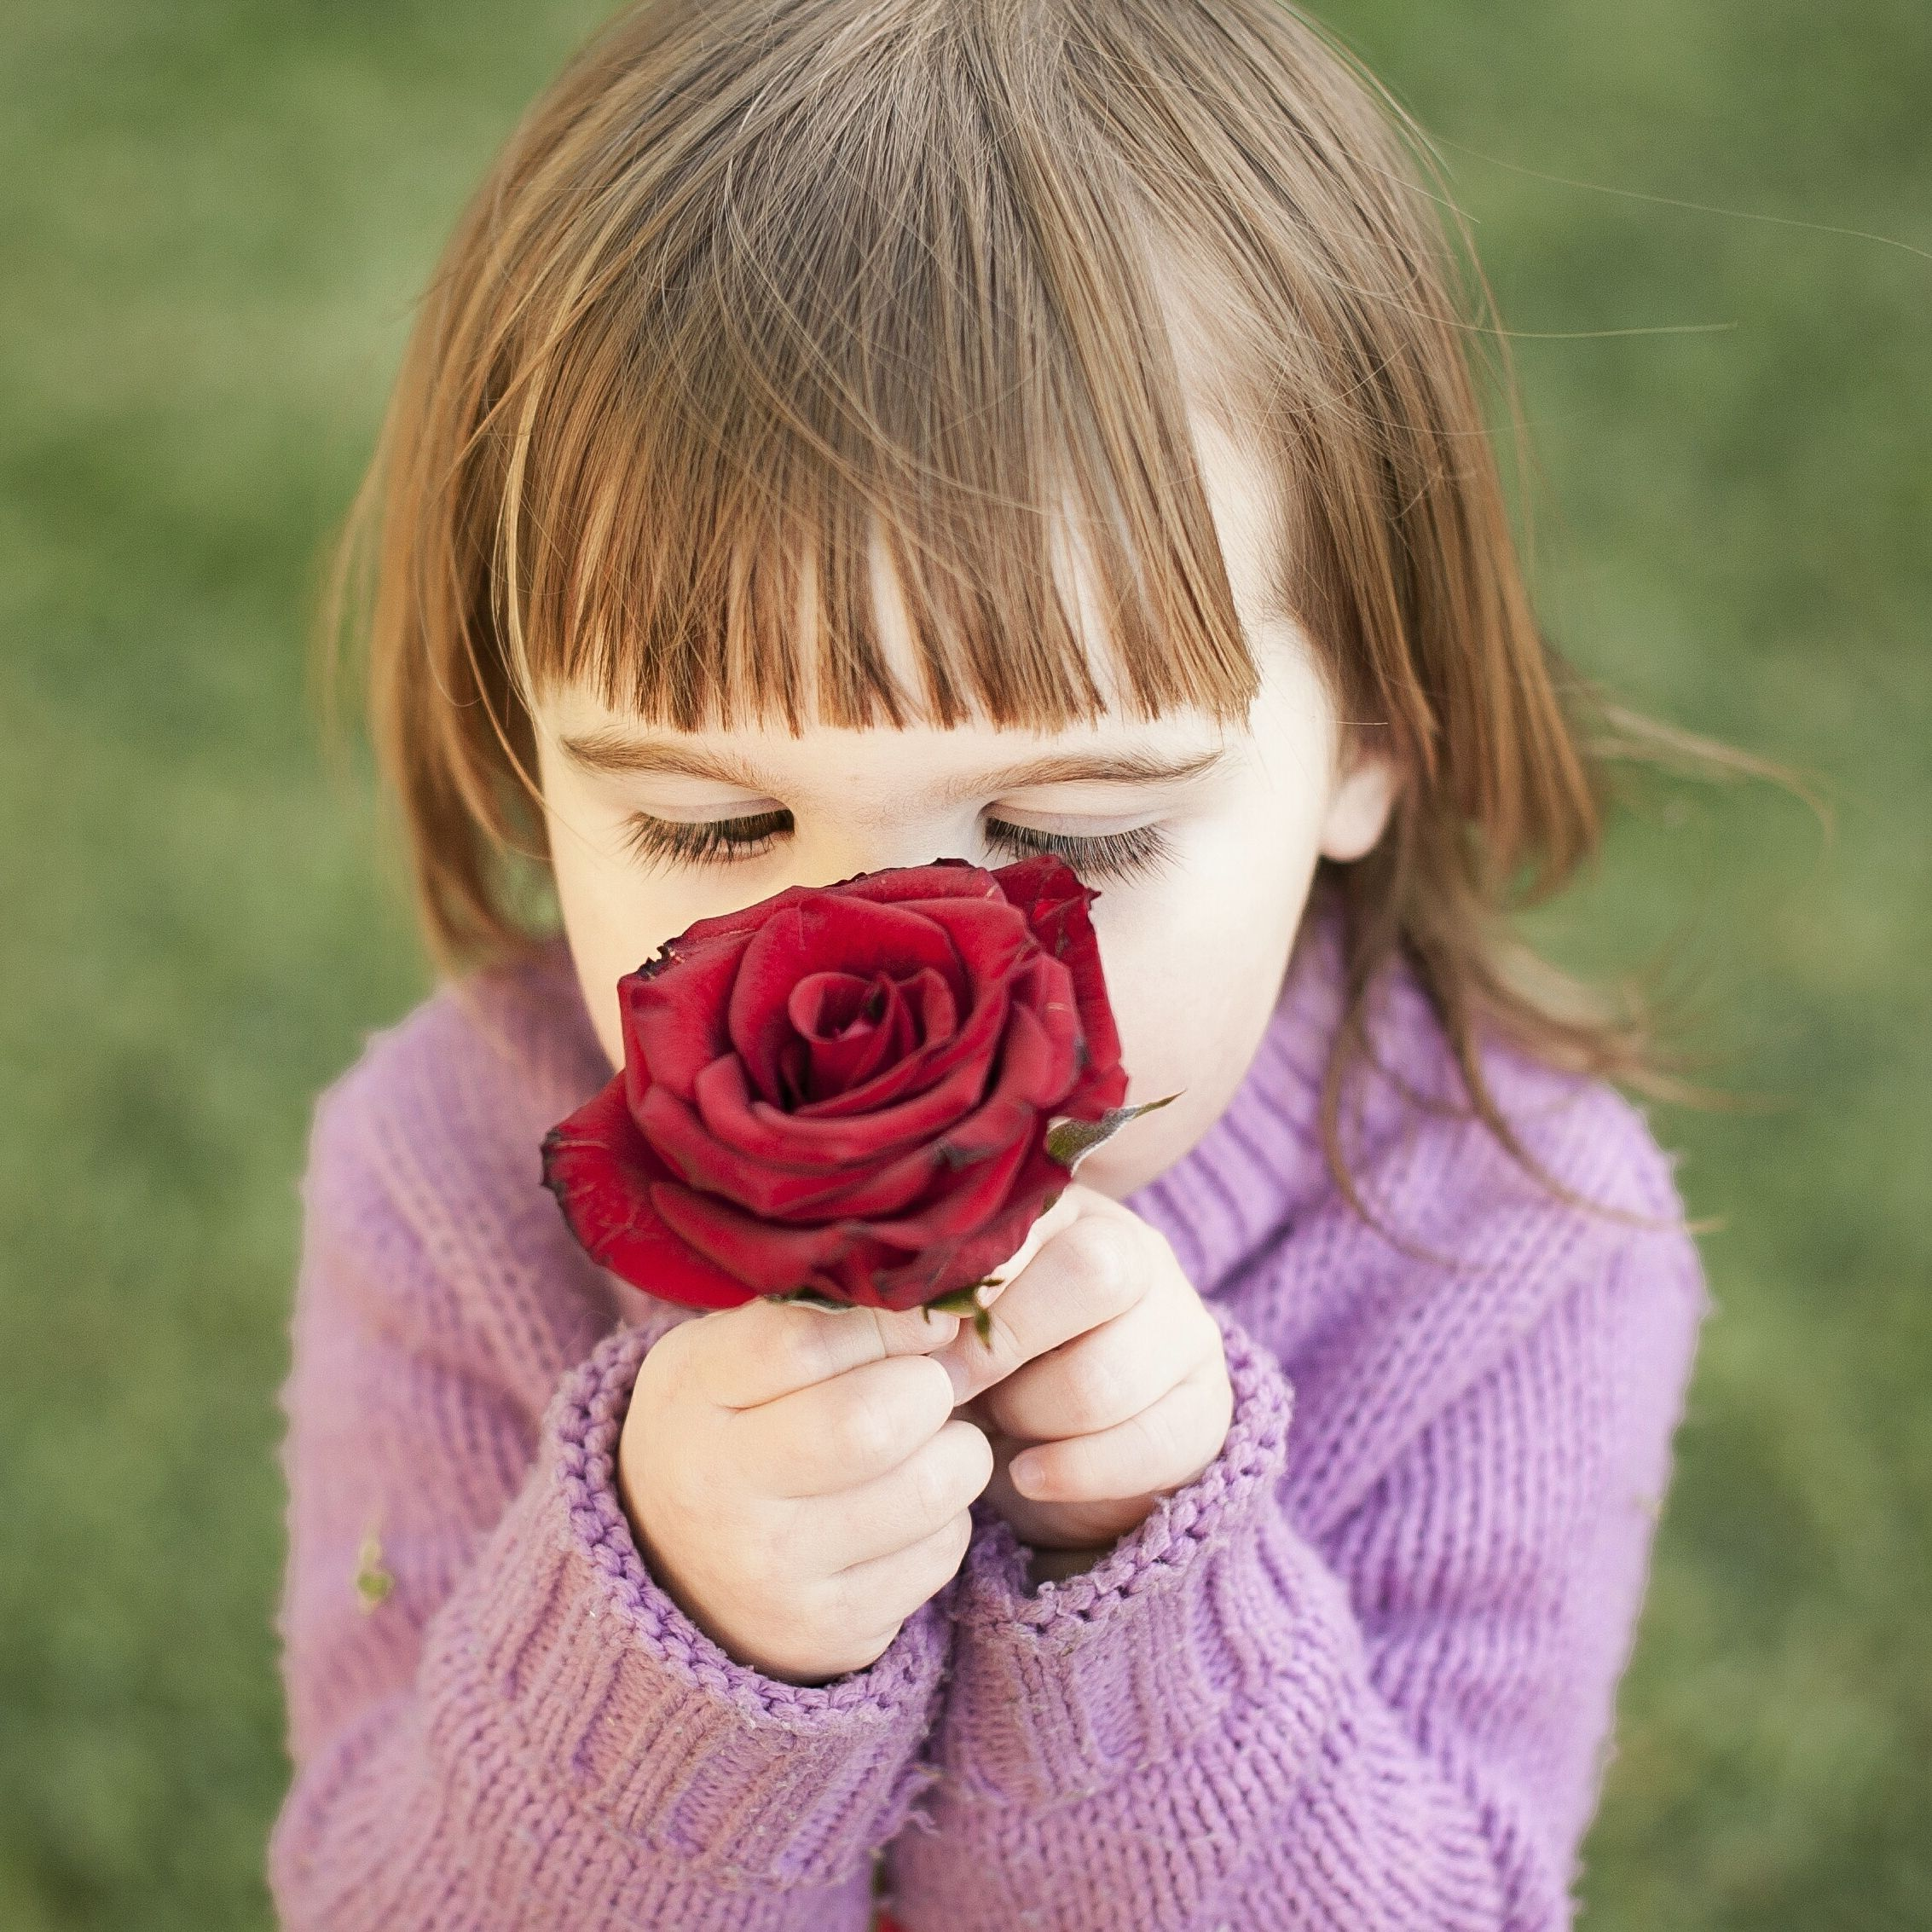 Top 30 Meaningful Baby Girl Names